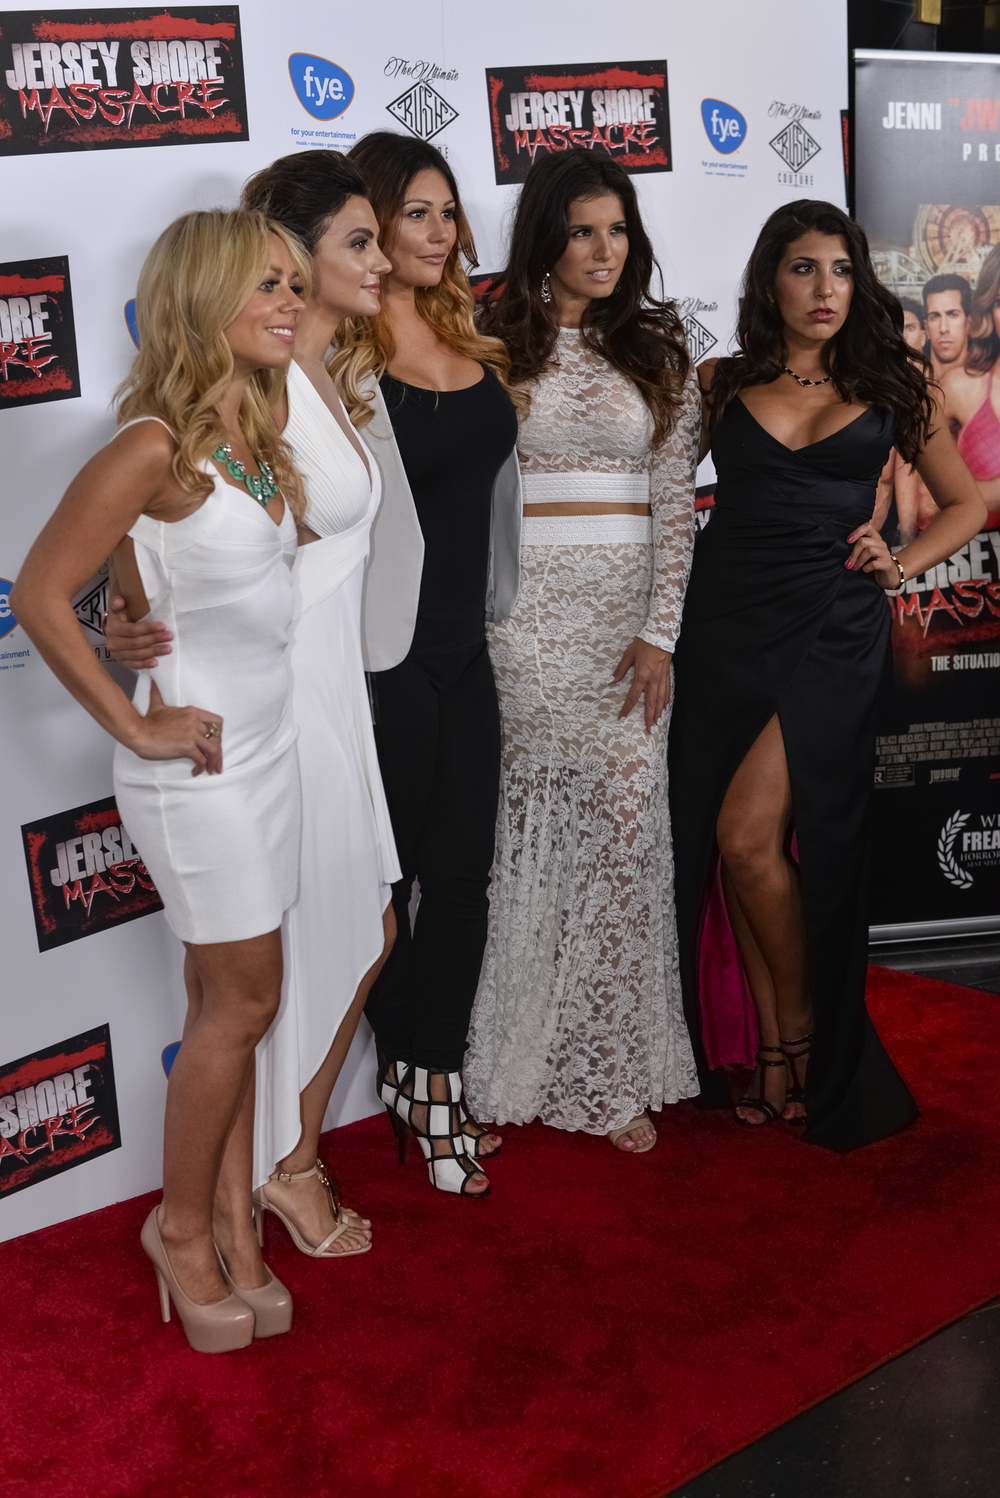 JWoww and the actresses